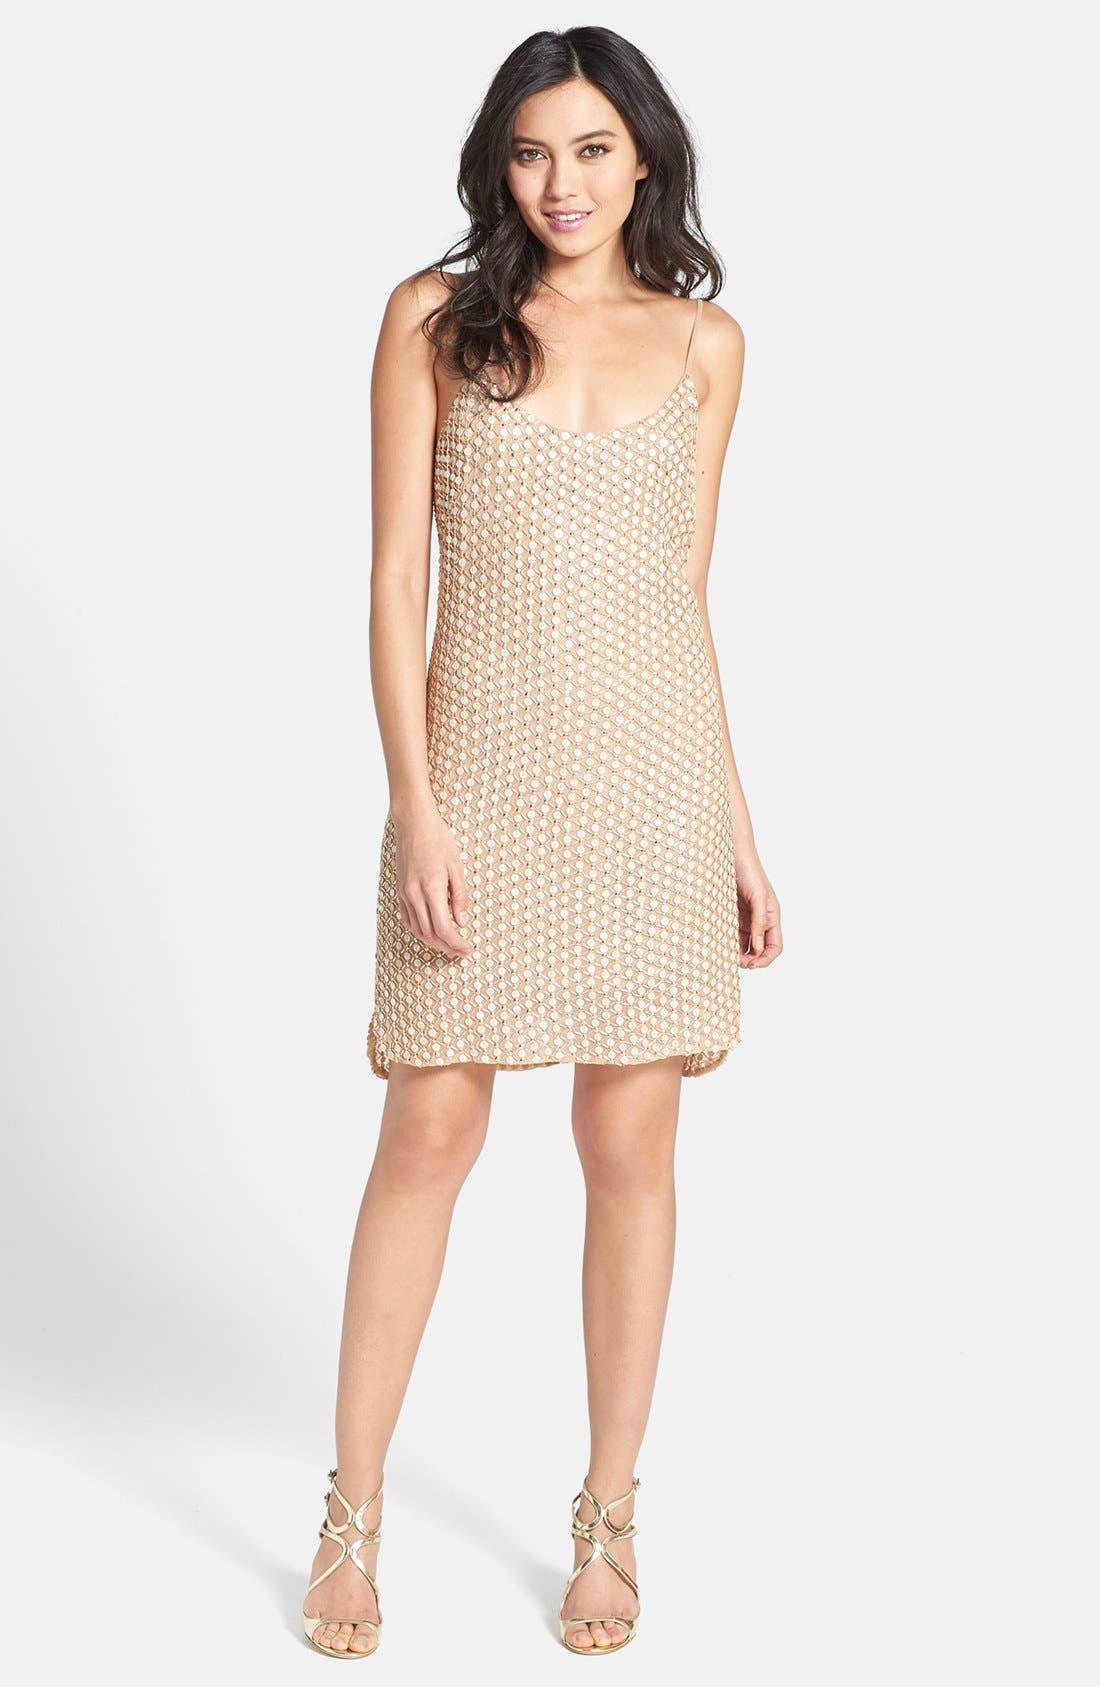 Main Image - Alexia Admor Embellished Tank Dress